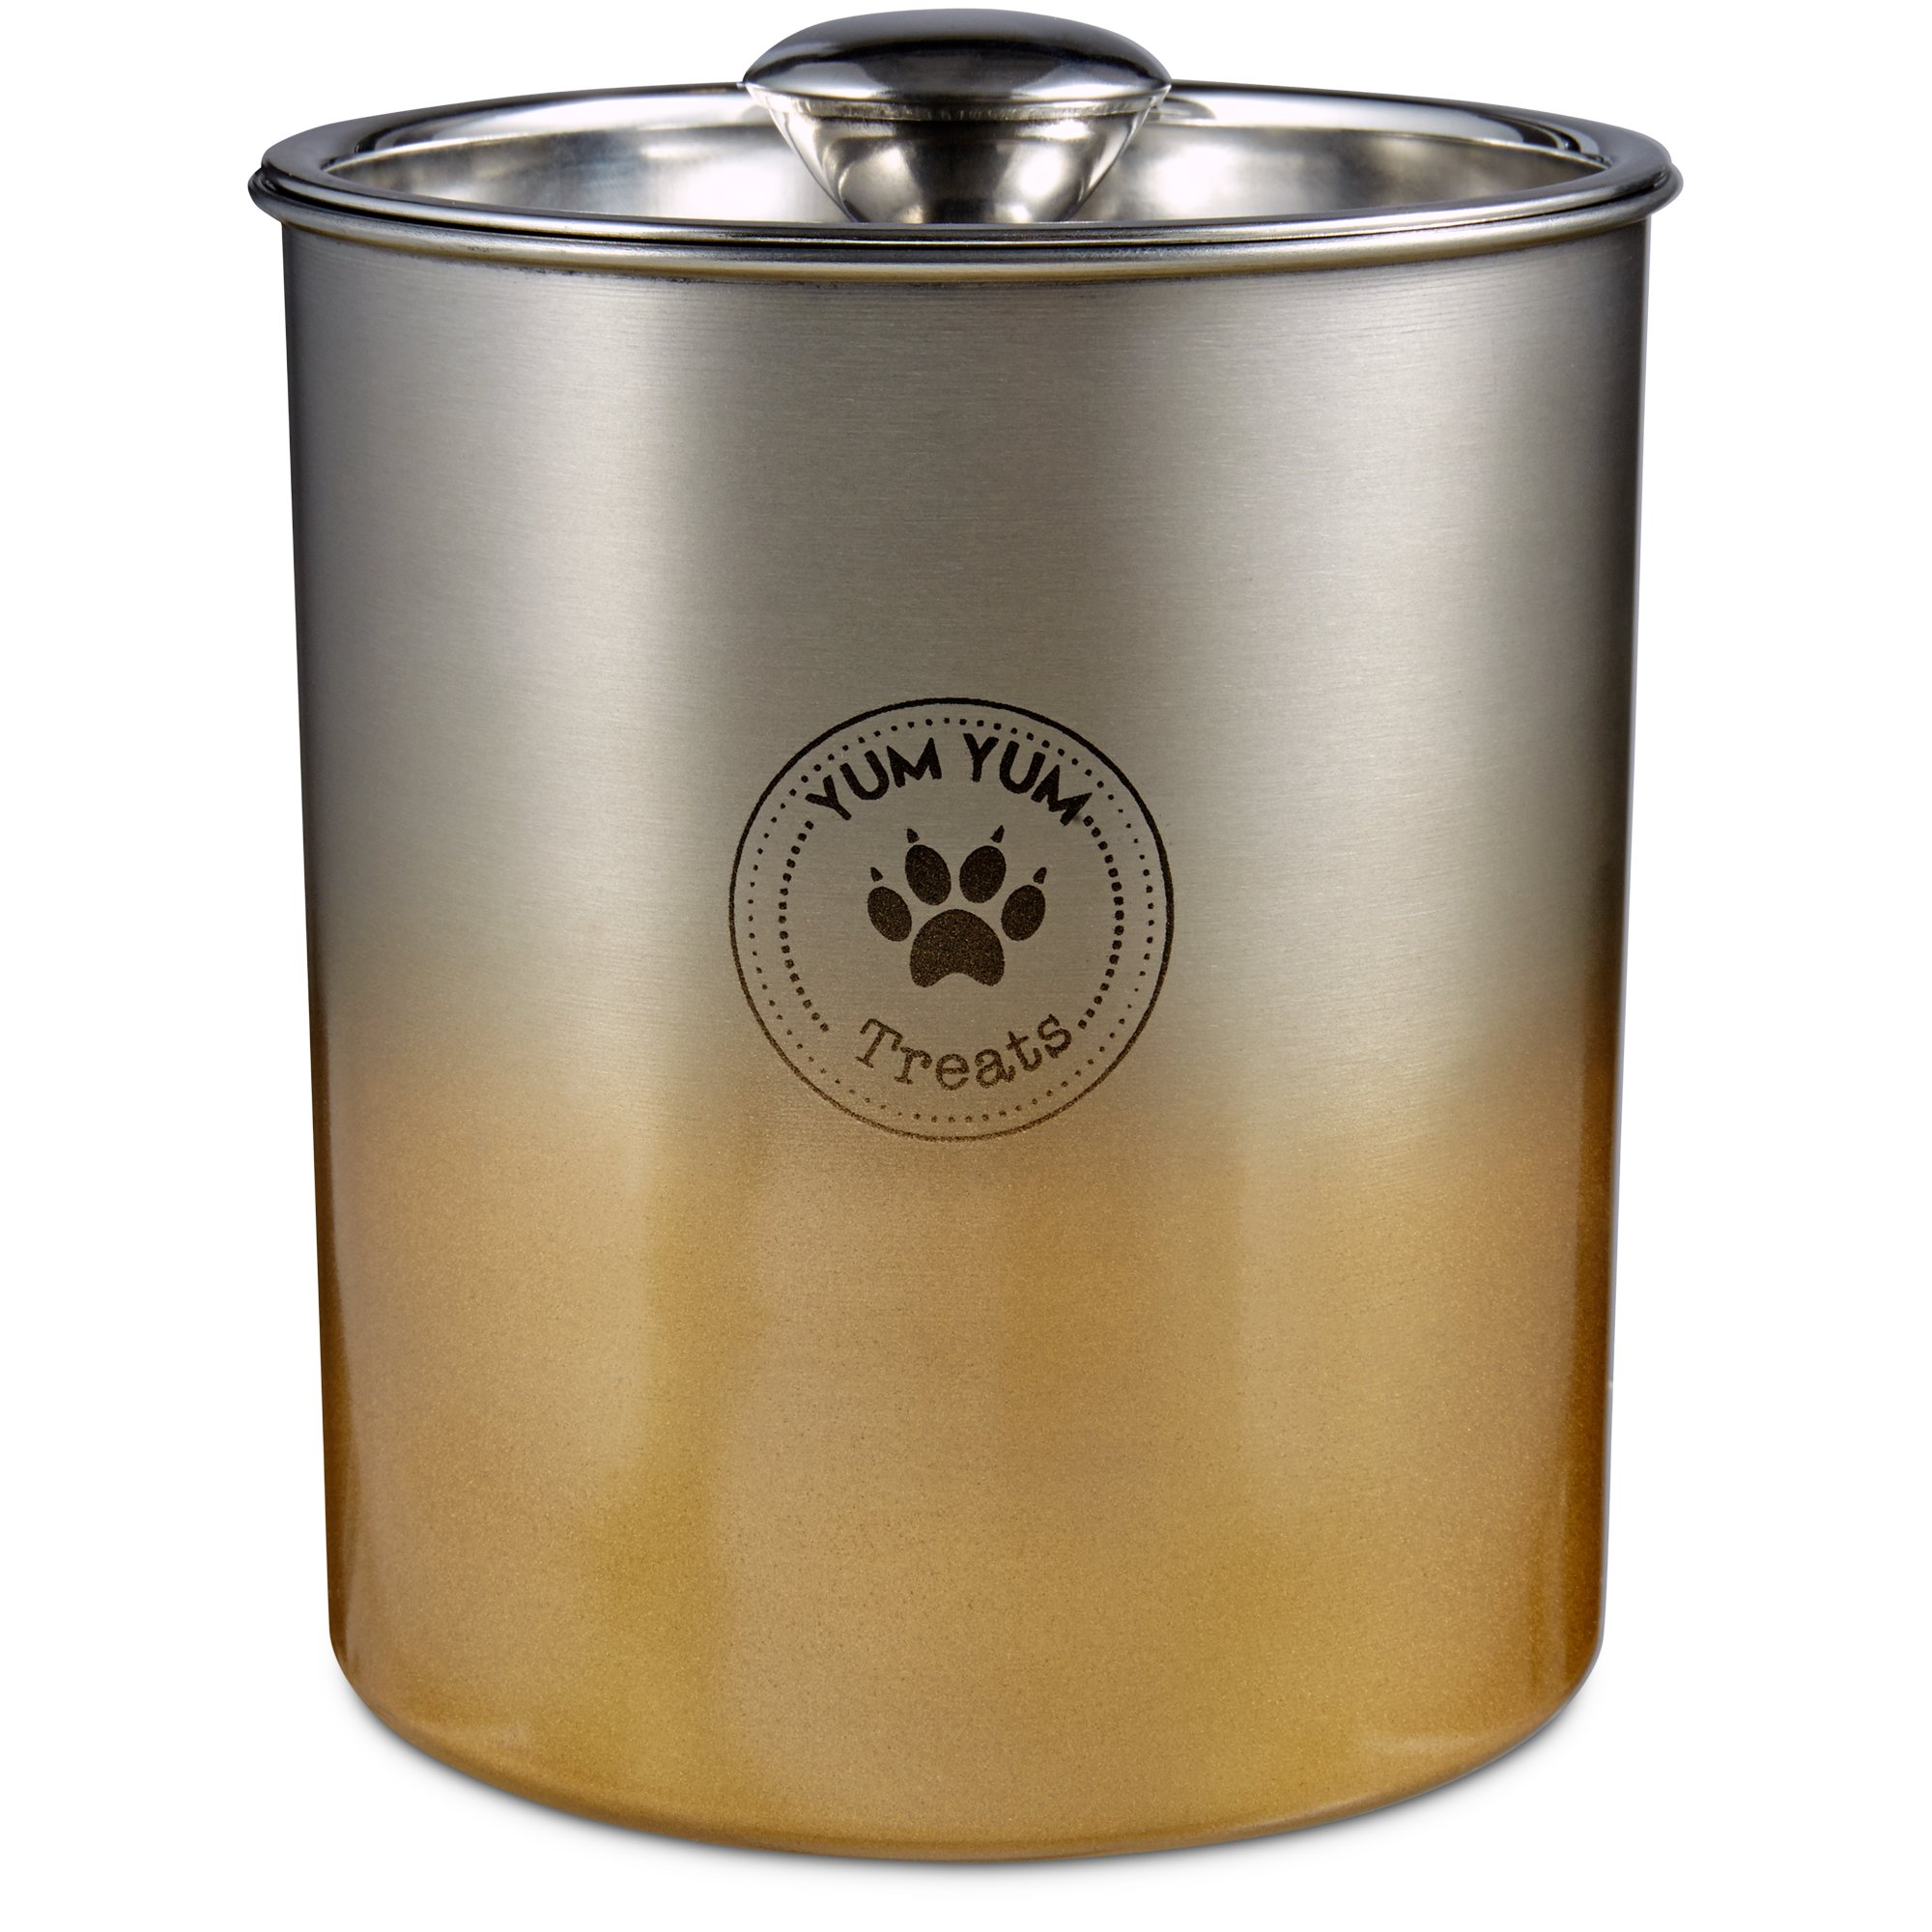 Harmony Stainless Steel Gold Ombre Dog Treat Jar